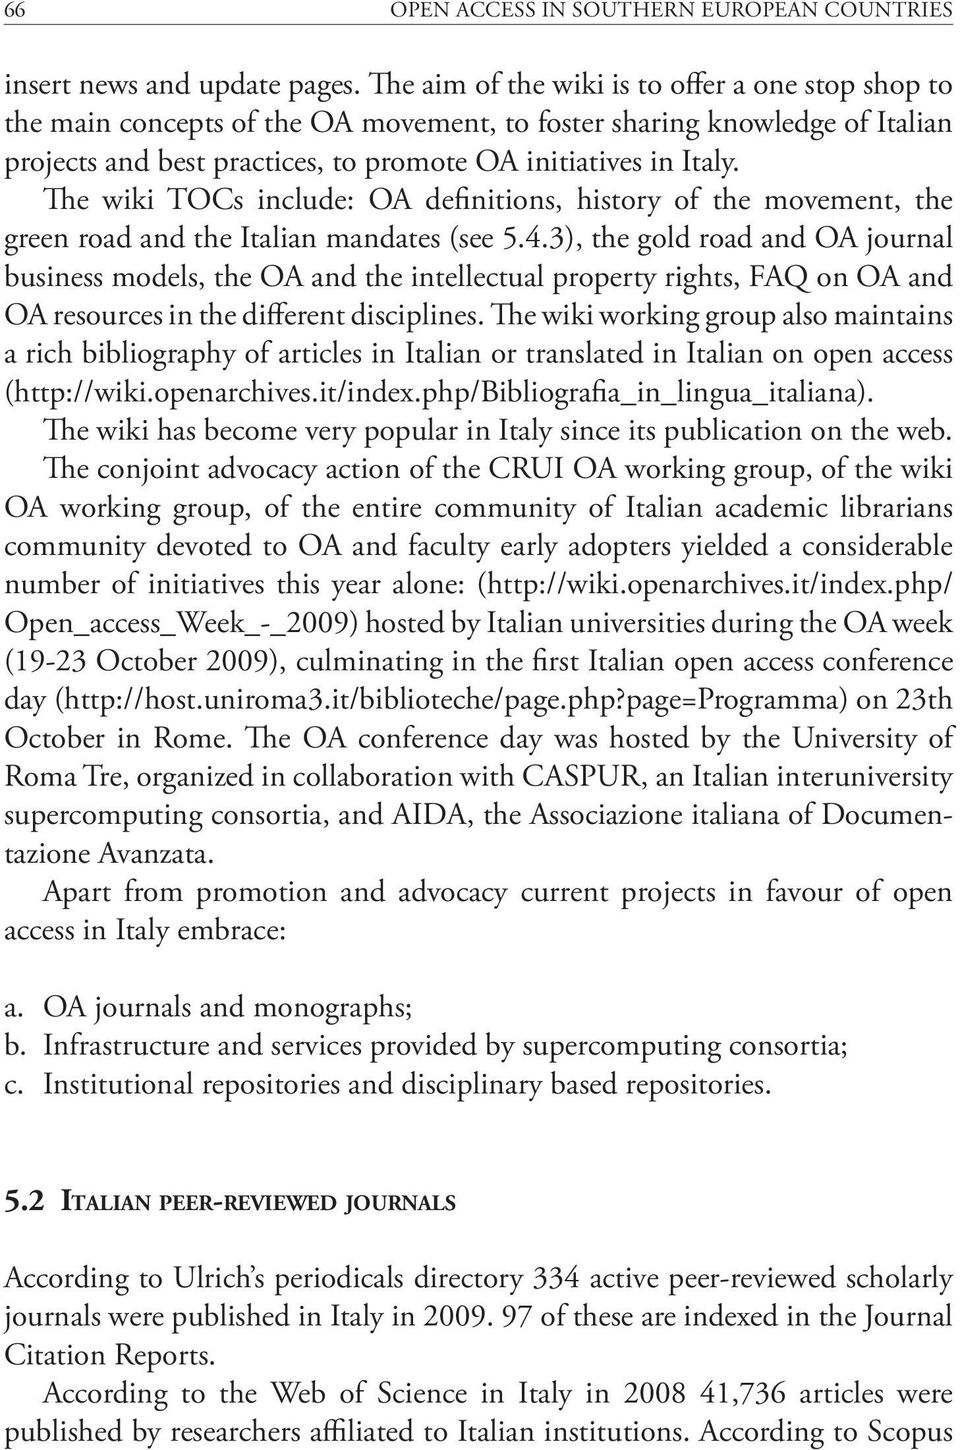 The wiki TOCs include: OA definitions, history of the movement, the green road and the Italian mandates (see 5.4.